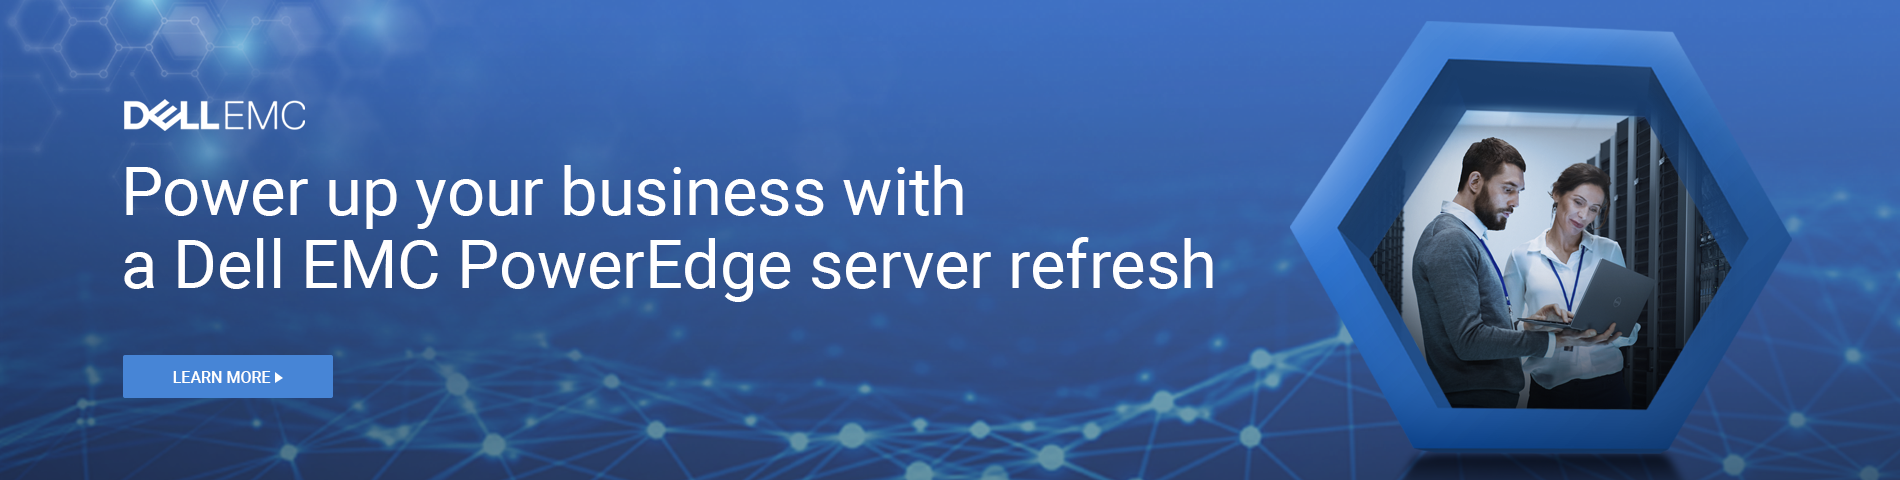 Dell EMC PowerEdge Refresh